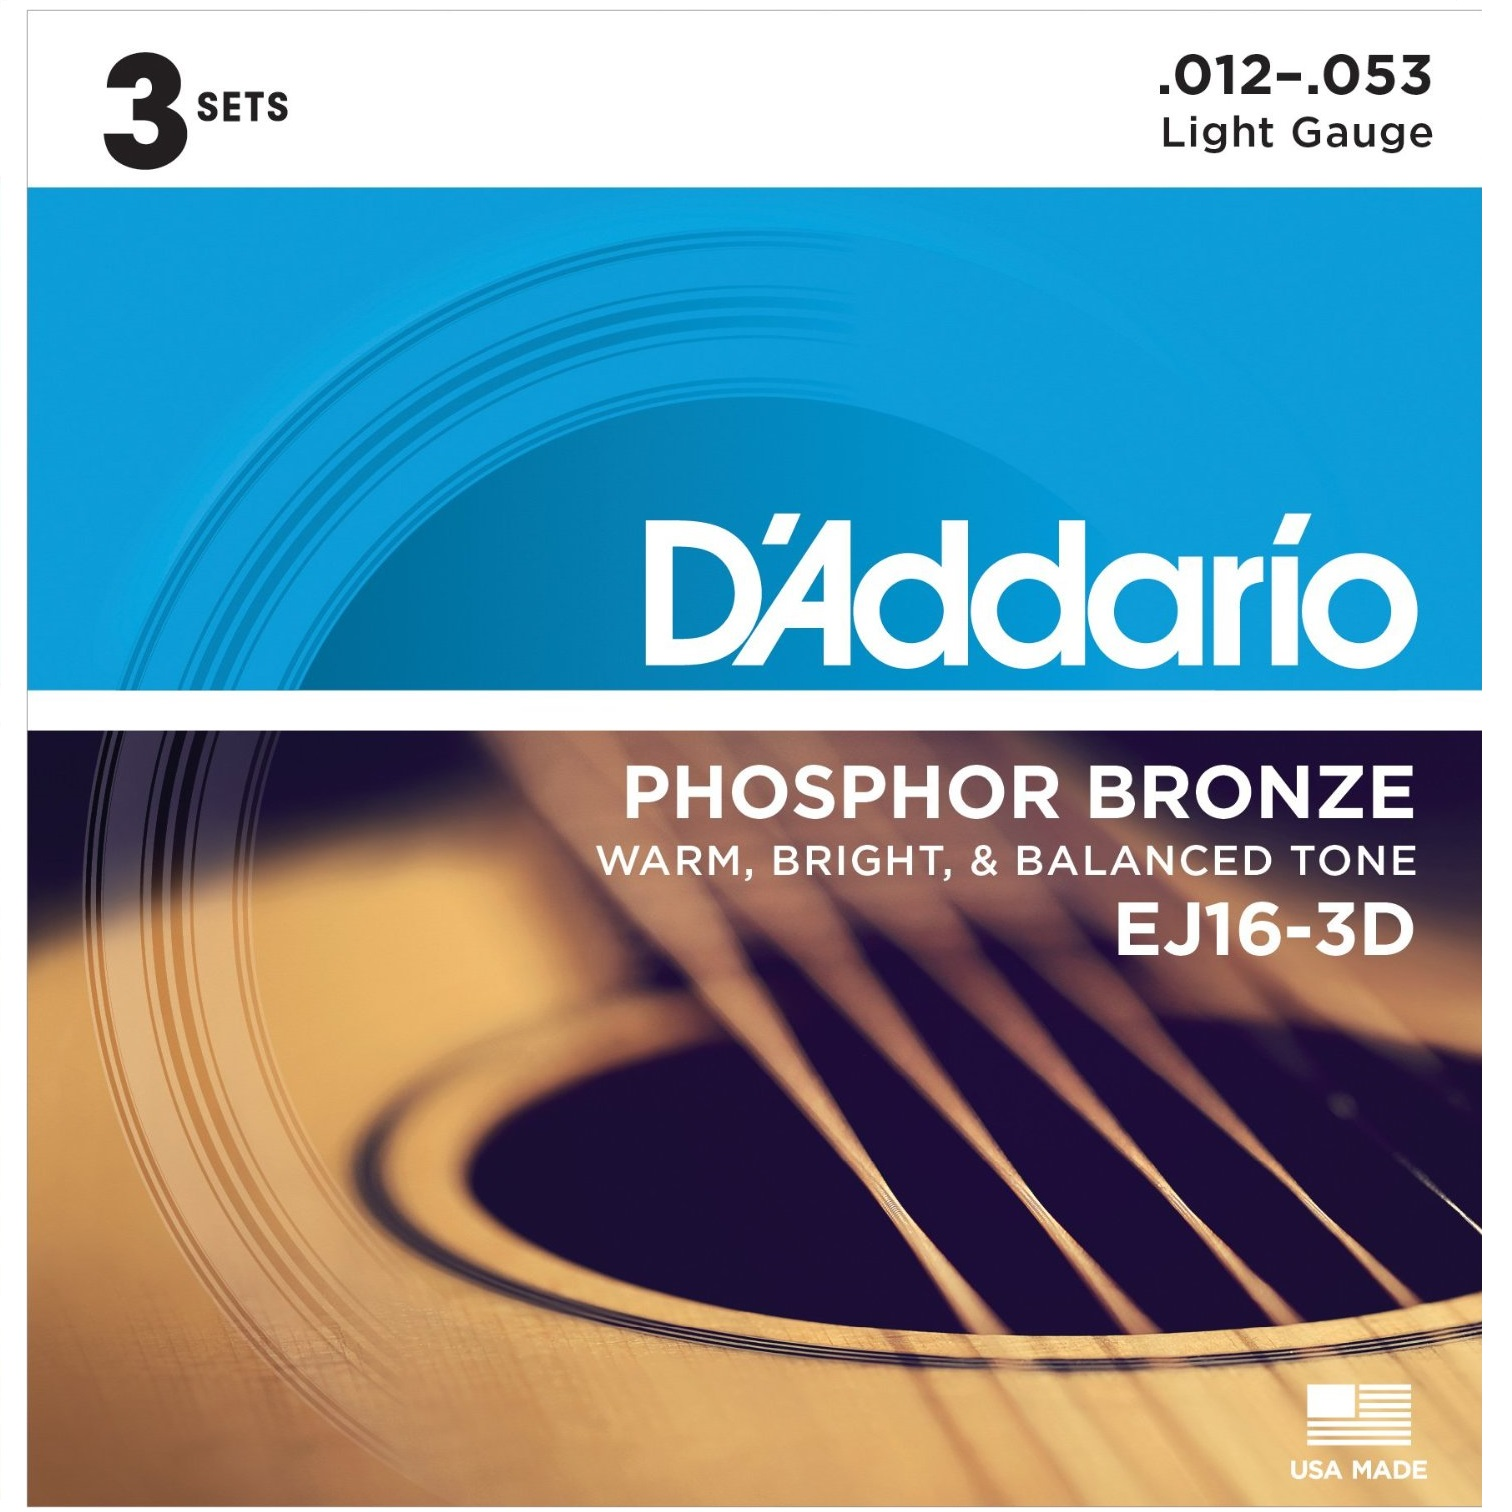 D'Addario Phosphor Bronze Acoustic Guitar